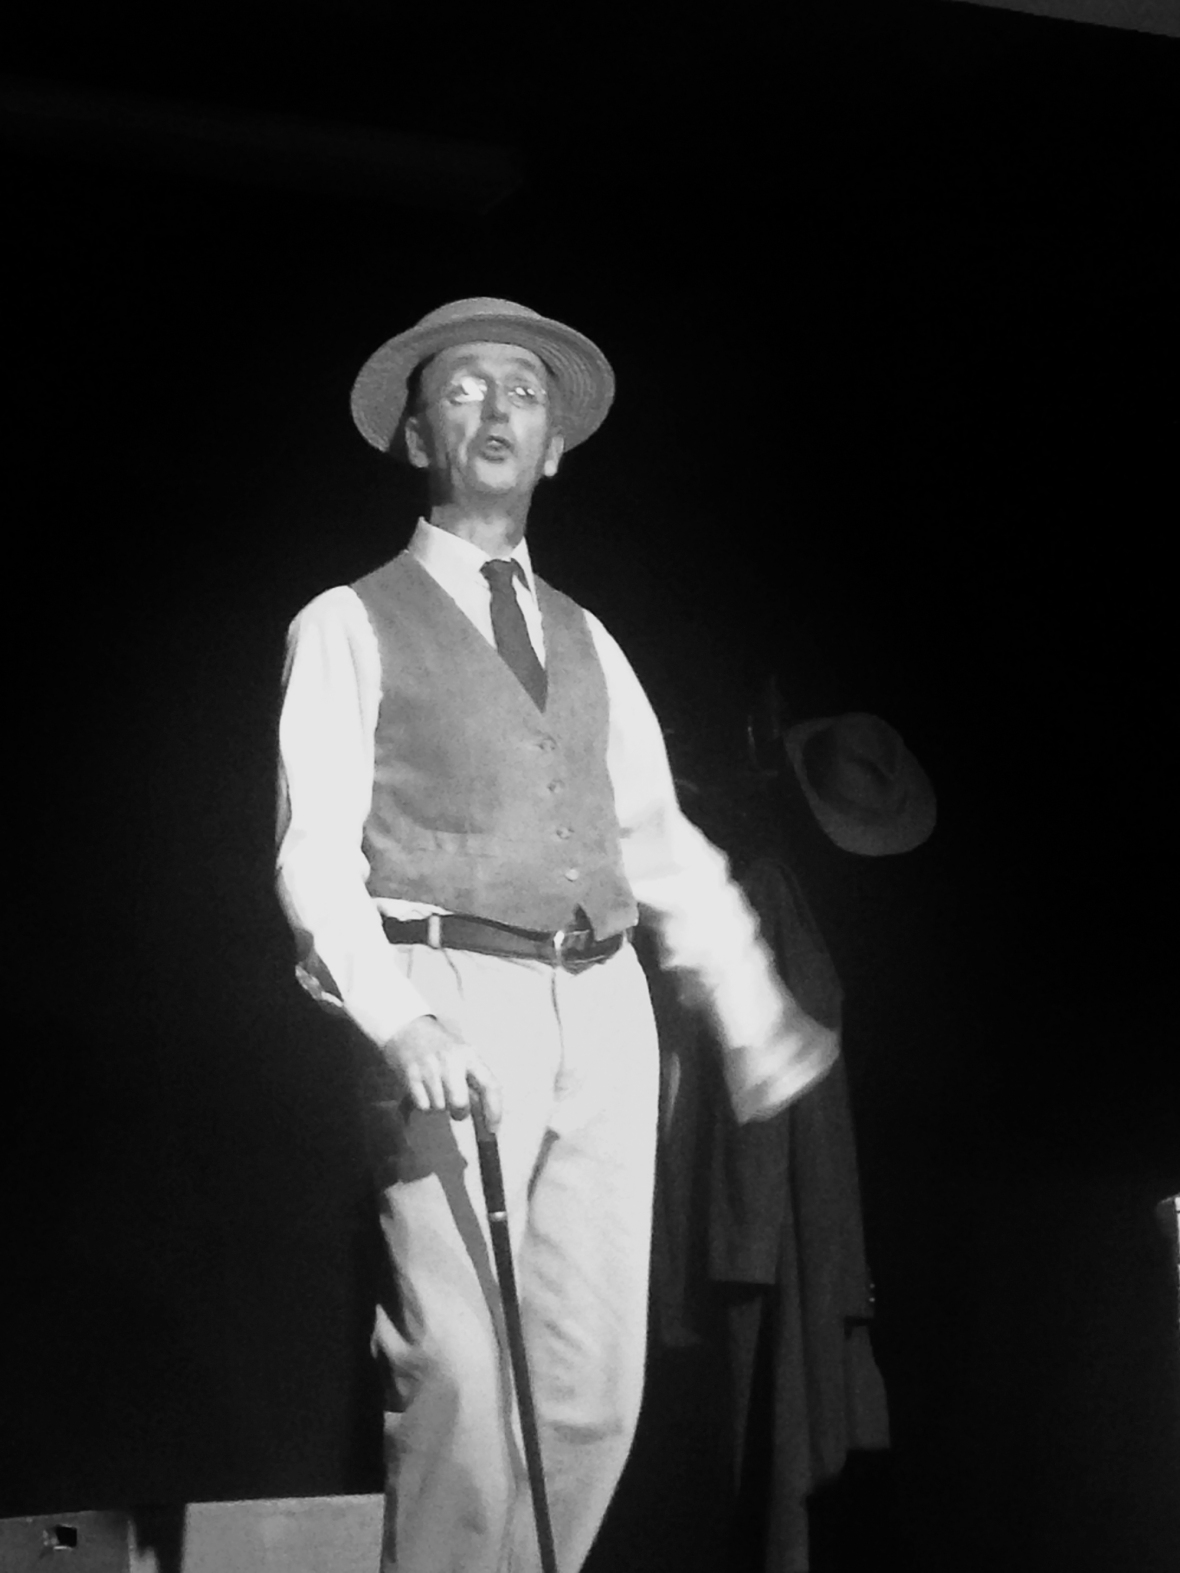 Declan Gorman as James Joyce